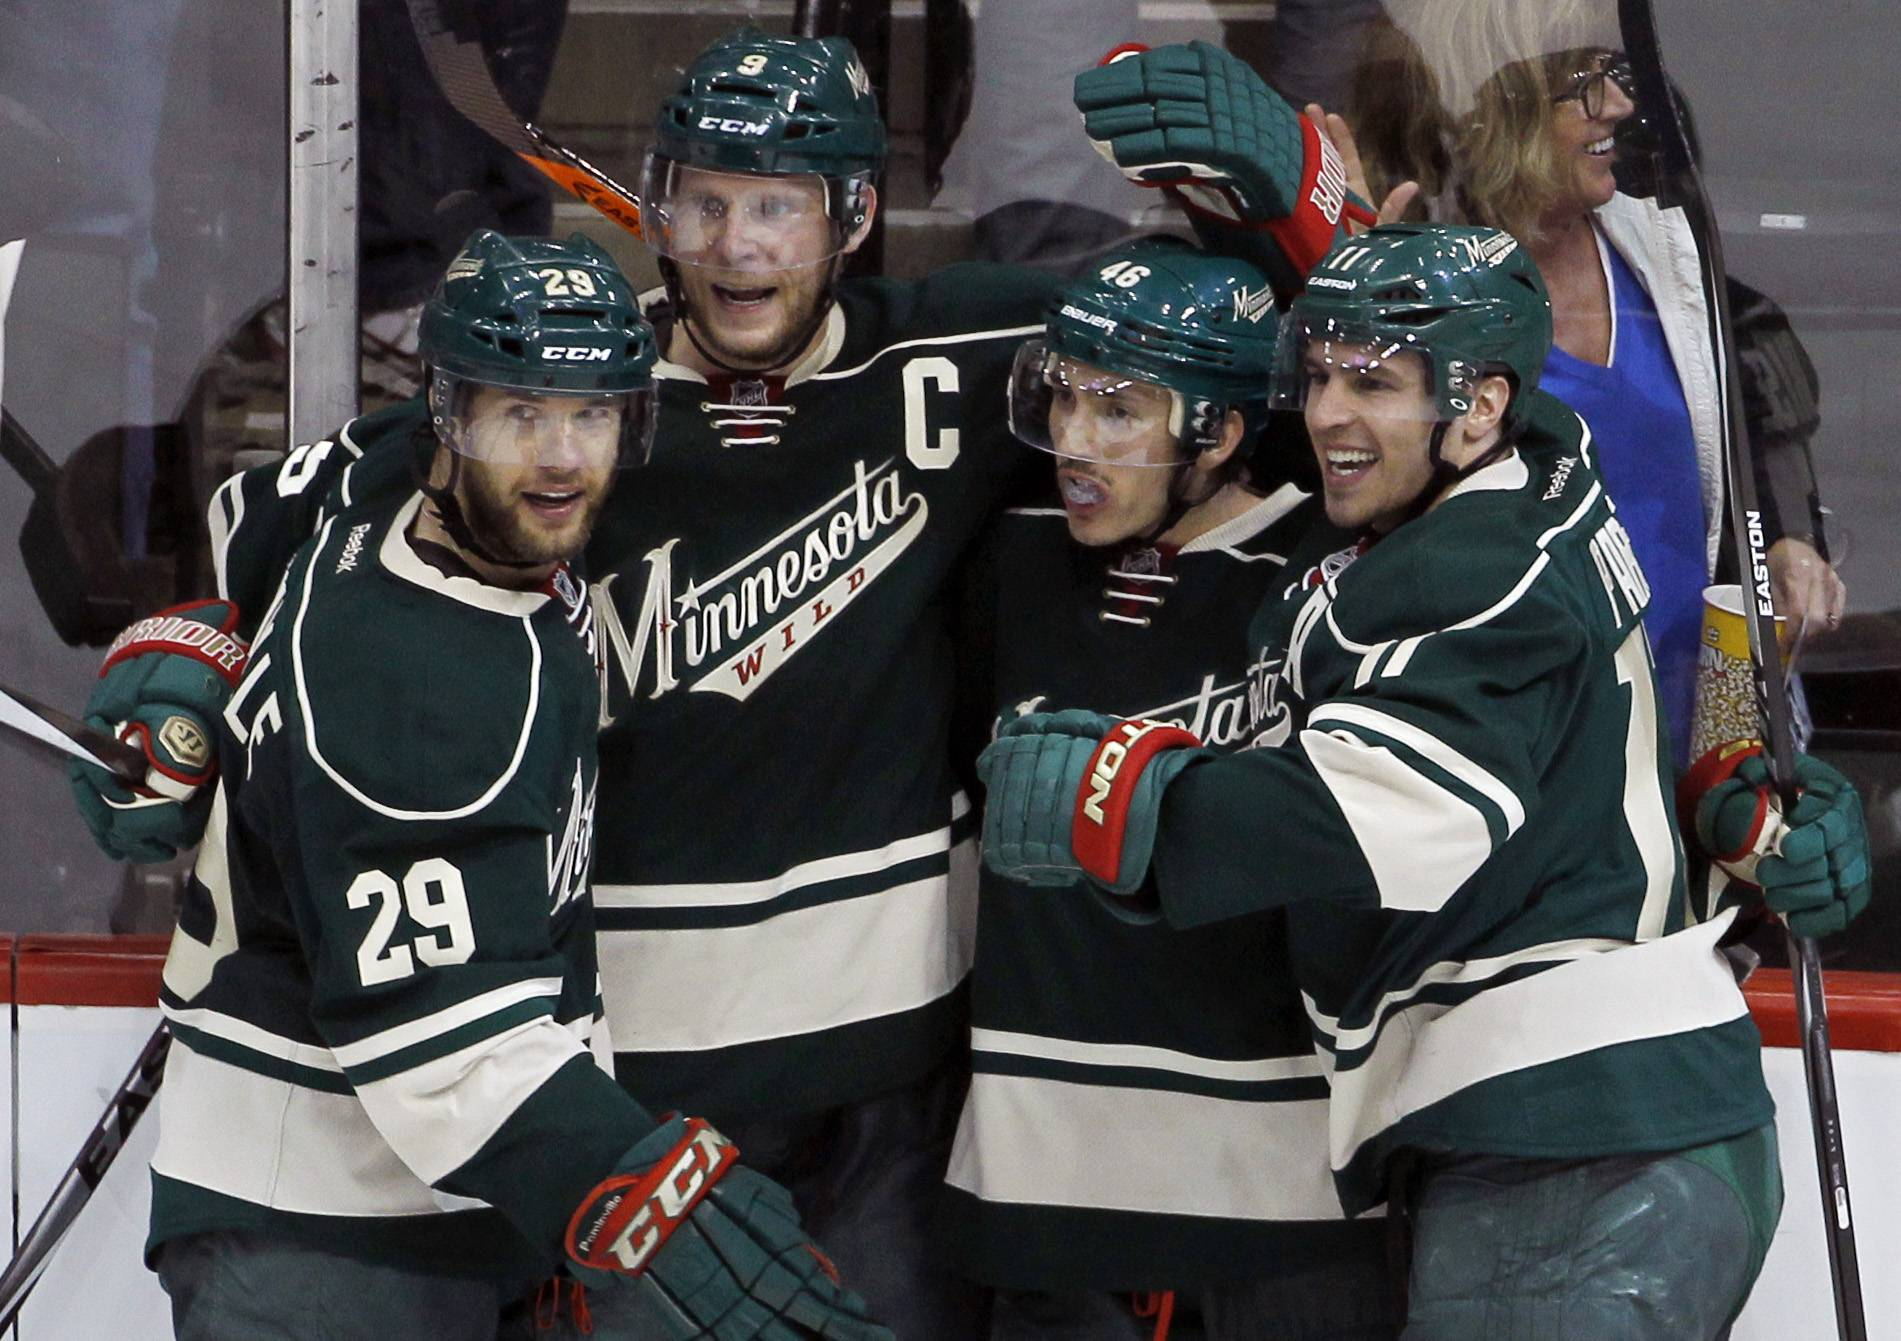 Minnesota Wild right wing Jason Pominville (29), center Mikko Koivu (9), of Finland, defenseman Jared Spurgeon (46) and Minnesota Wild left wing Zach Parise, right, celebrate after Spurgeon scored on Chicago Blackhawks goalie Corey Crawford during the third period.